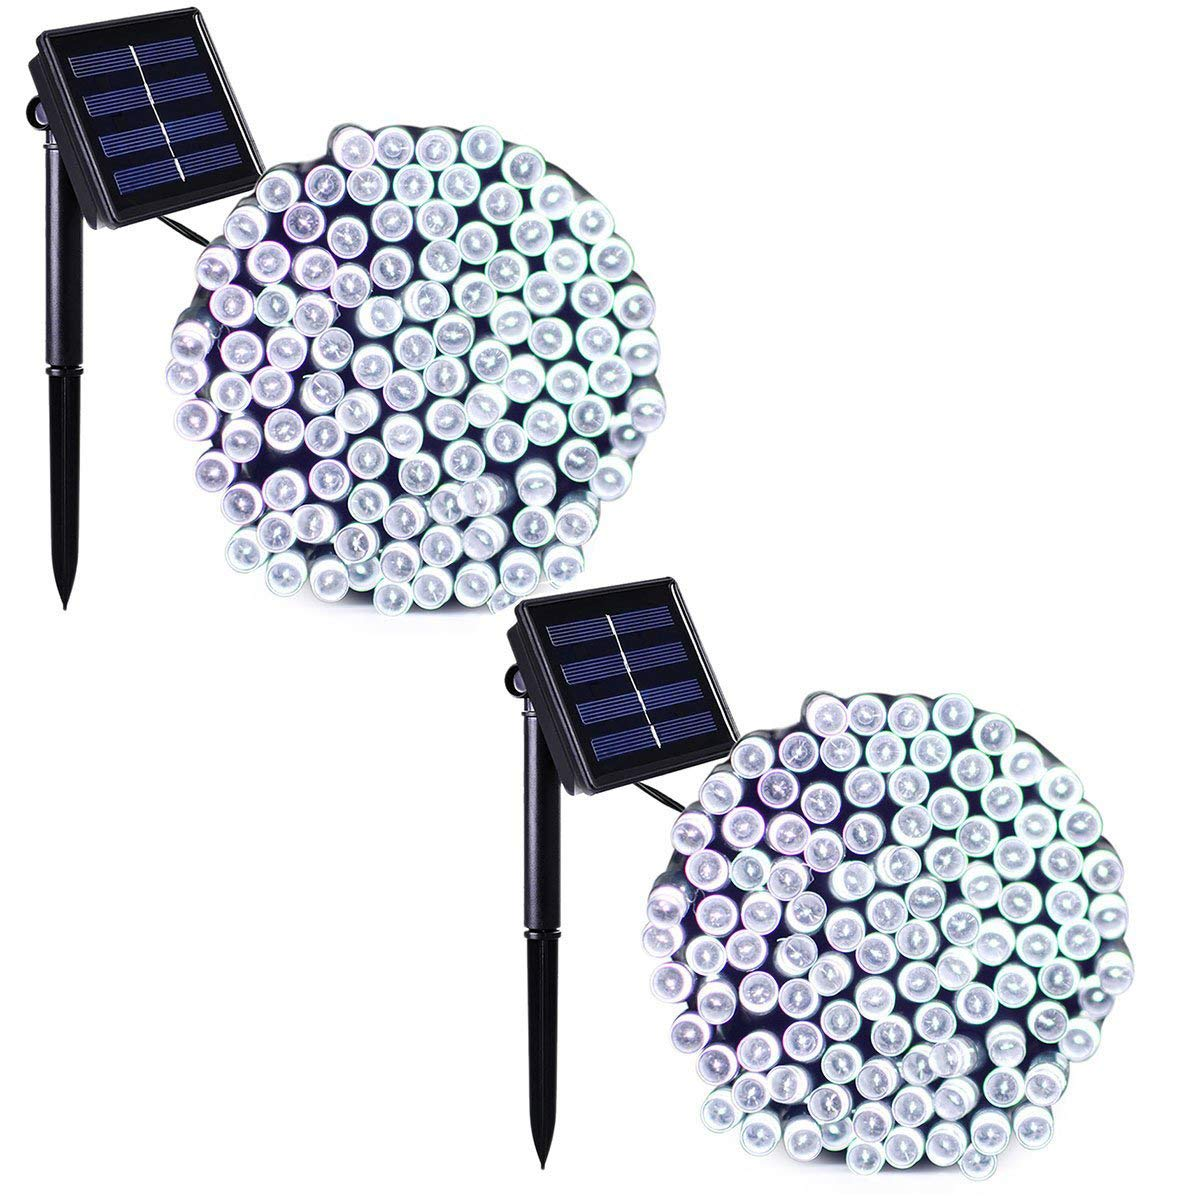 Binval Solar Fairy Christmas String Lights, 2-Pack 72ft 200LED, Ambiance Lighting for Outdoor, Patio, Lawn, Landscape, Fairy Garden, Home, Wedding, Holiday Party and Xmas Tree(White) by Binval